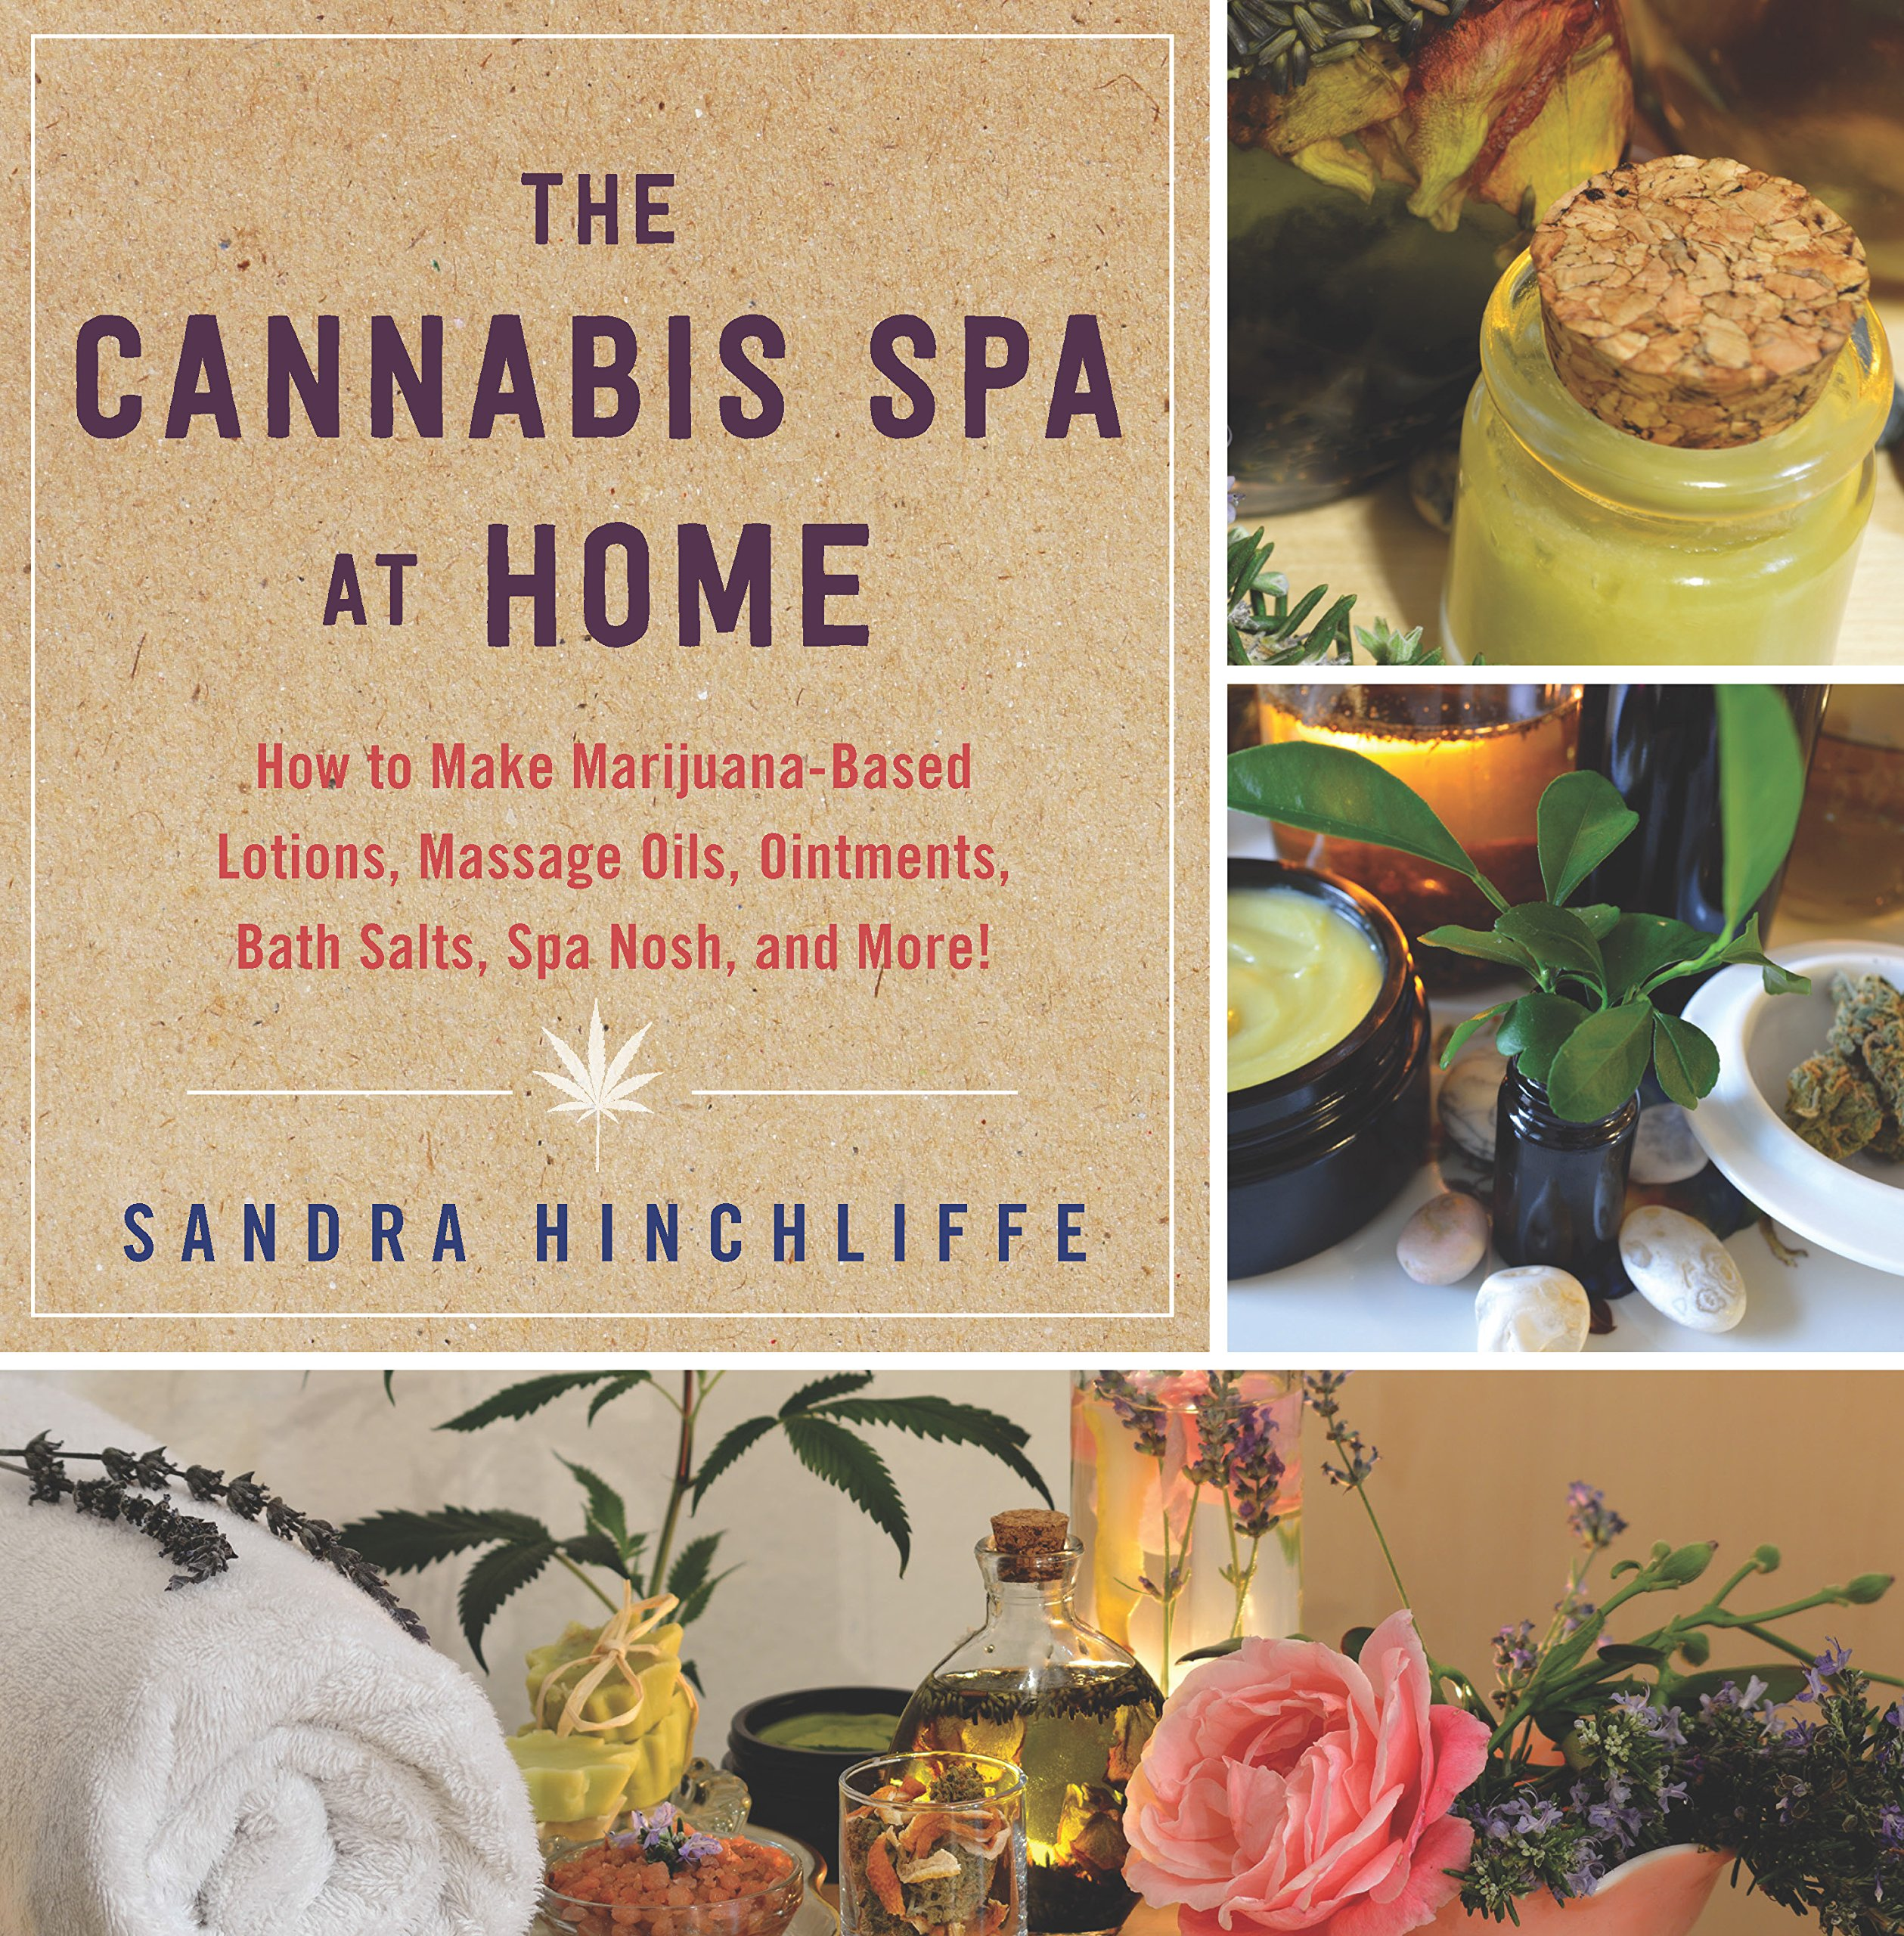 Cannabis Spa Home Marijuana Infused Ointments